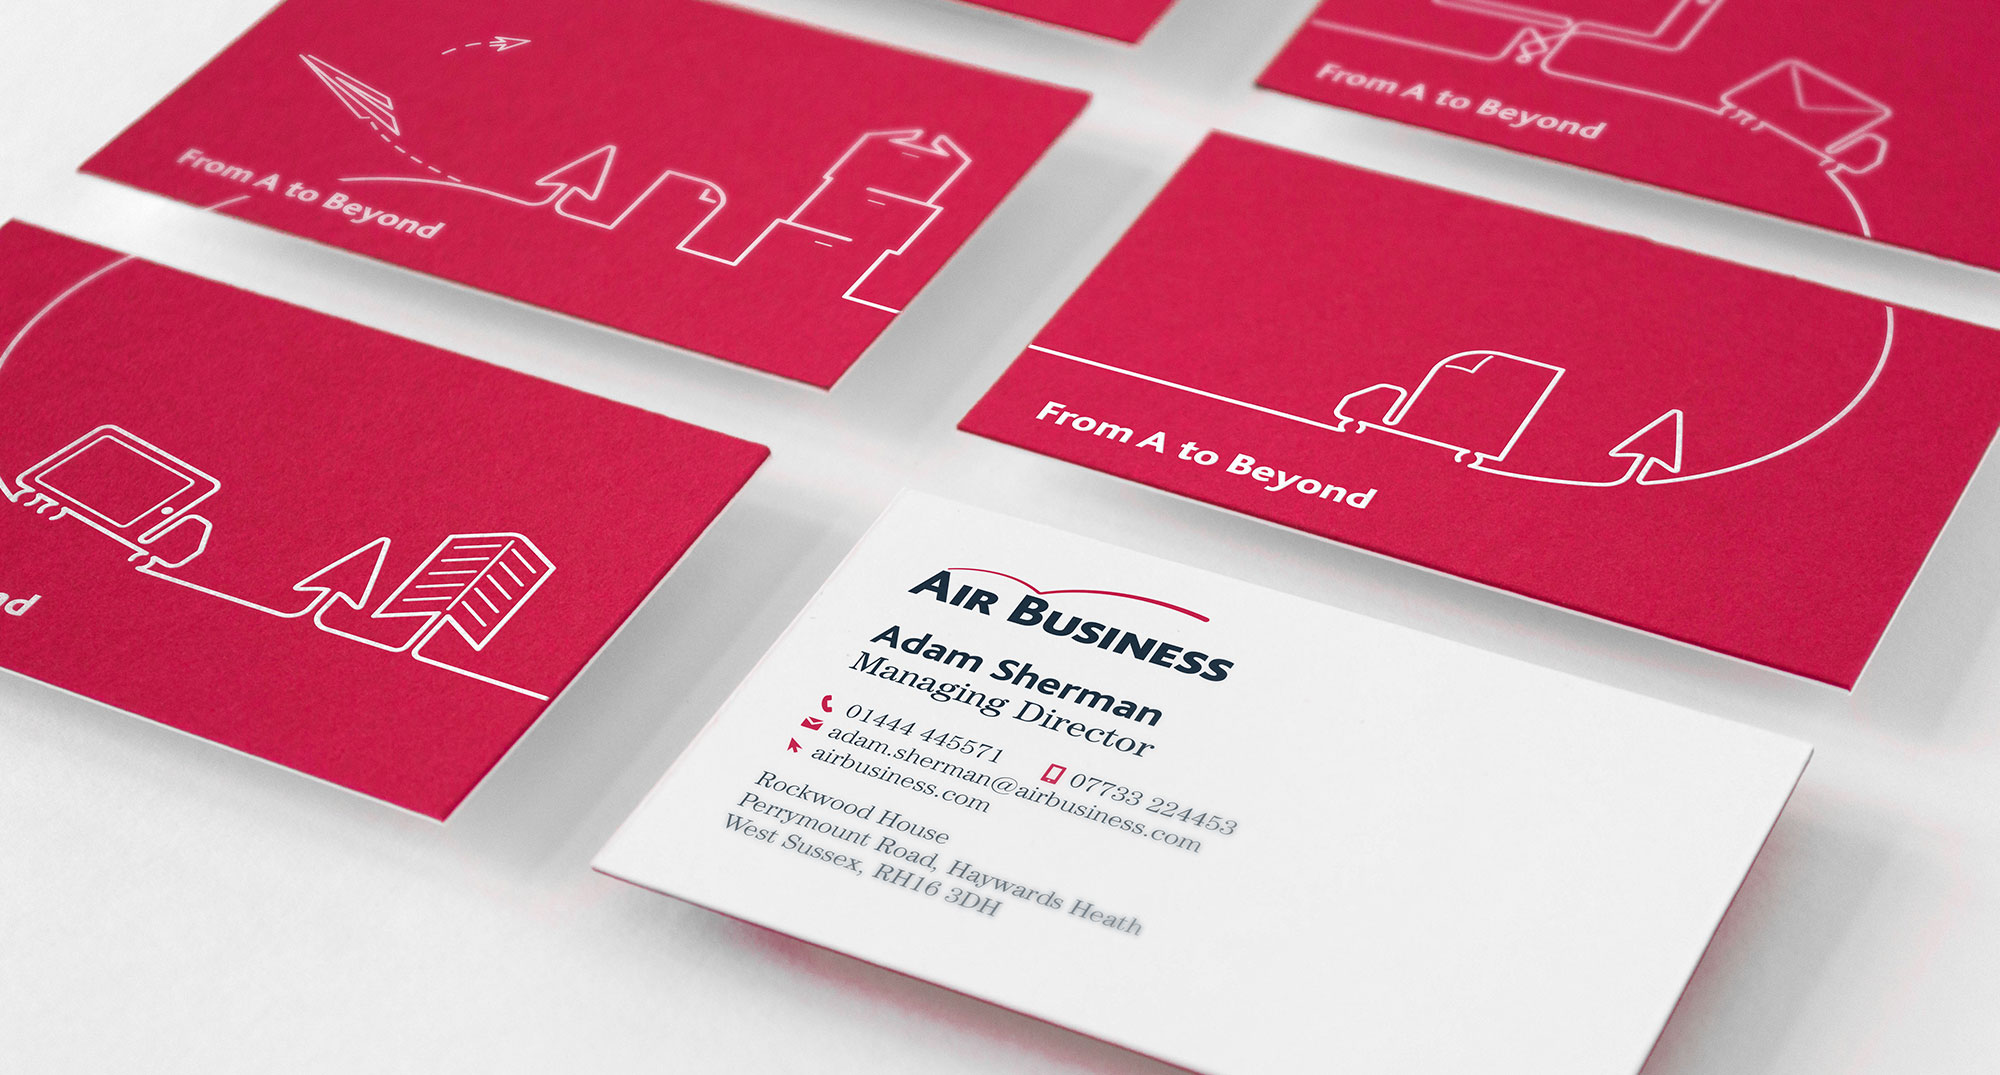 Air business corporate branding business cards close the corporate branding colourmoves